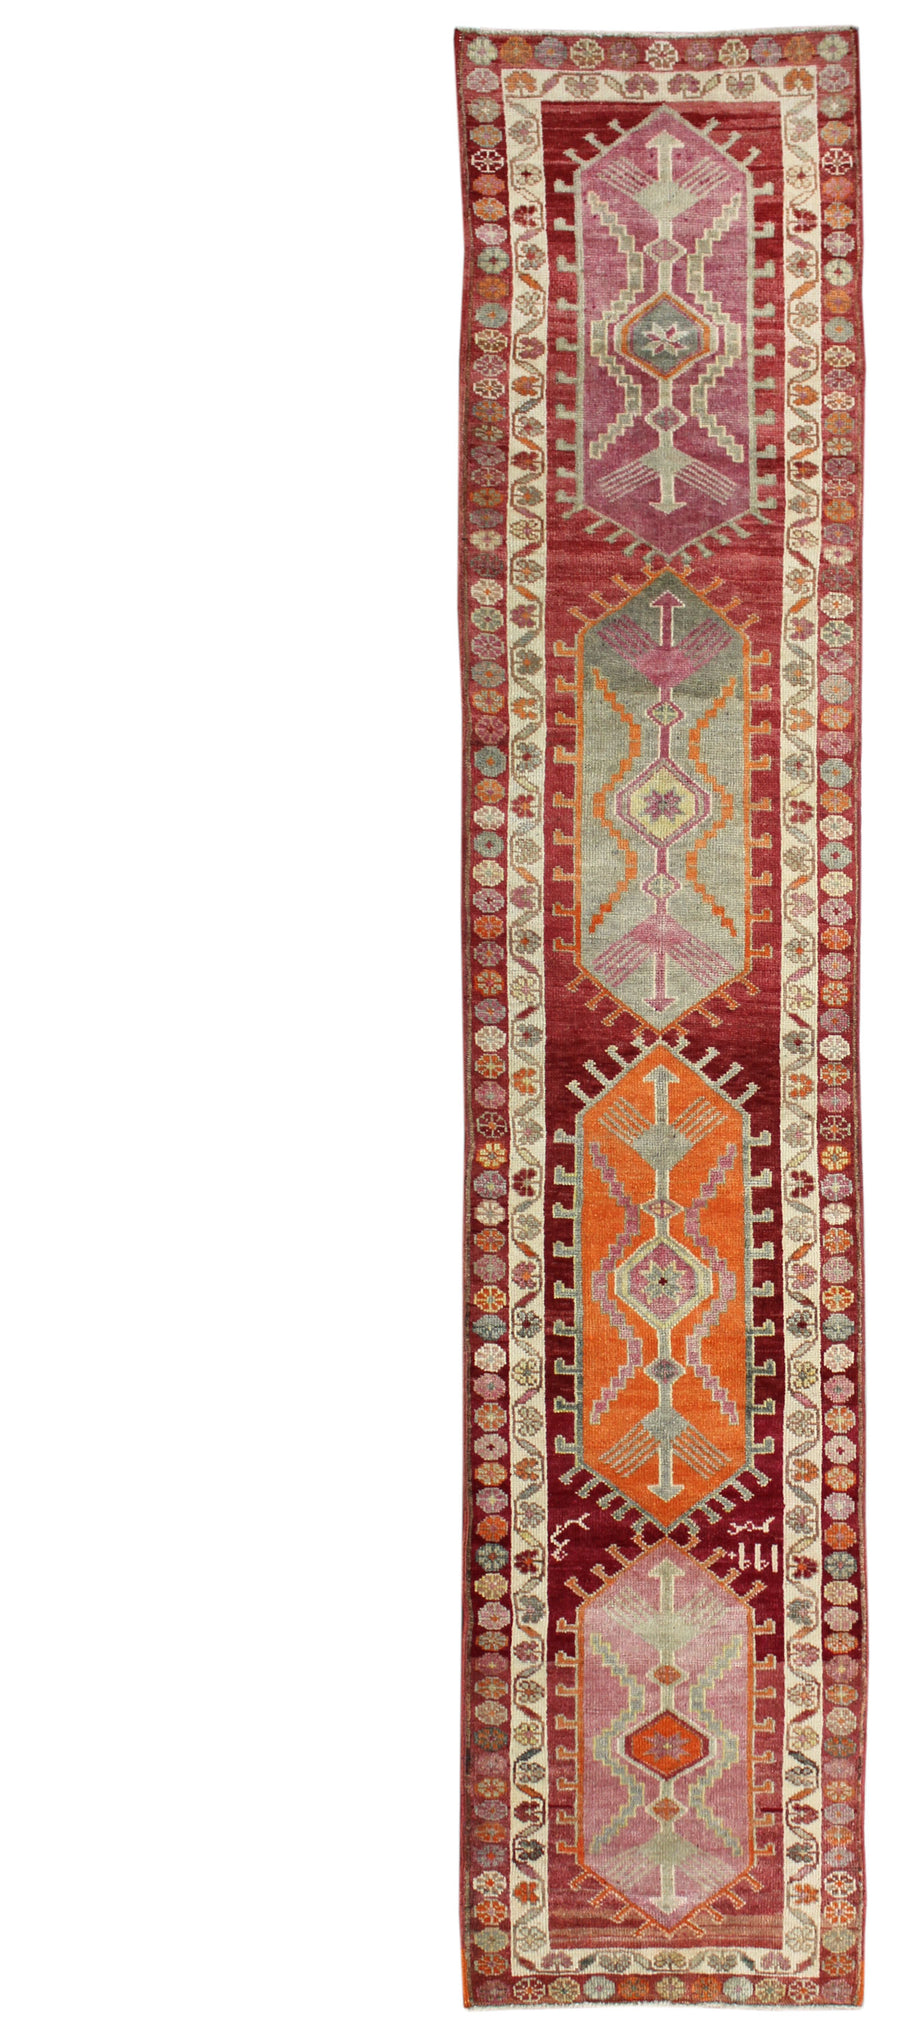 KURDISH HANDKNOTTED RUG, J54114